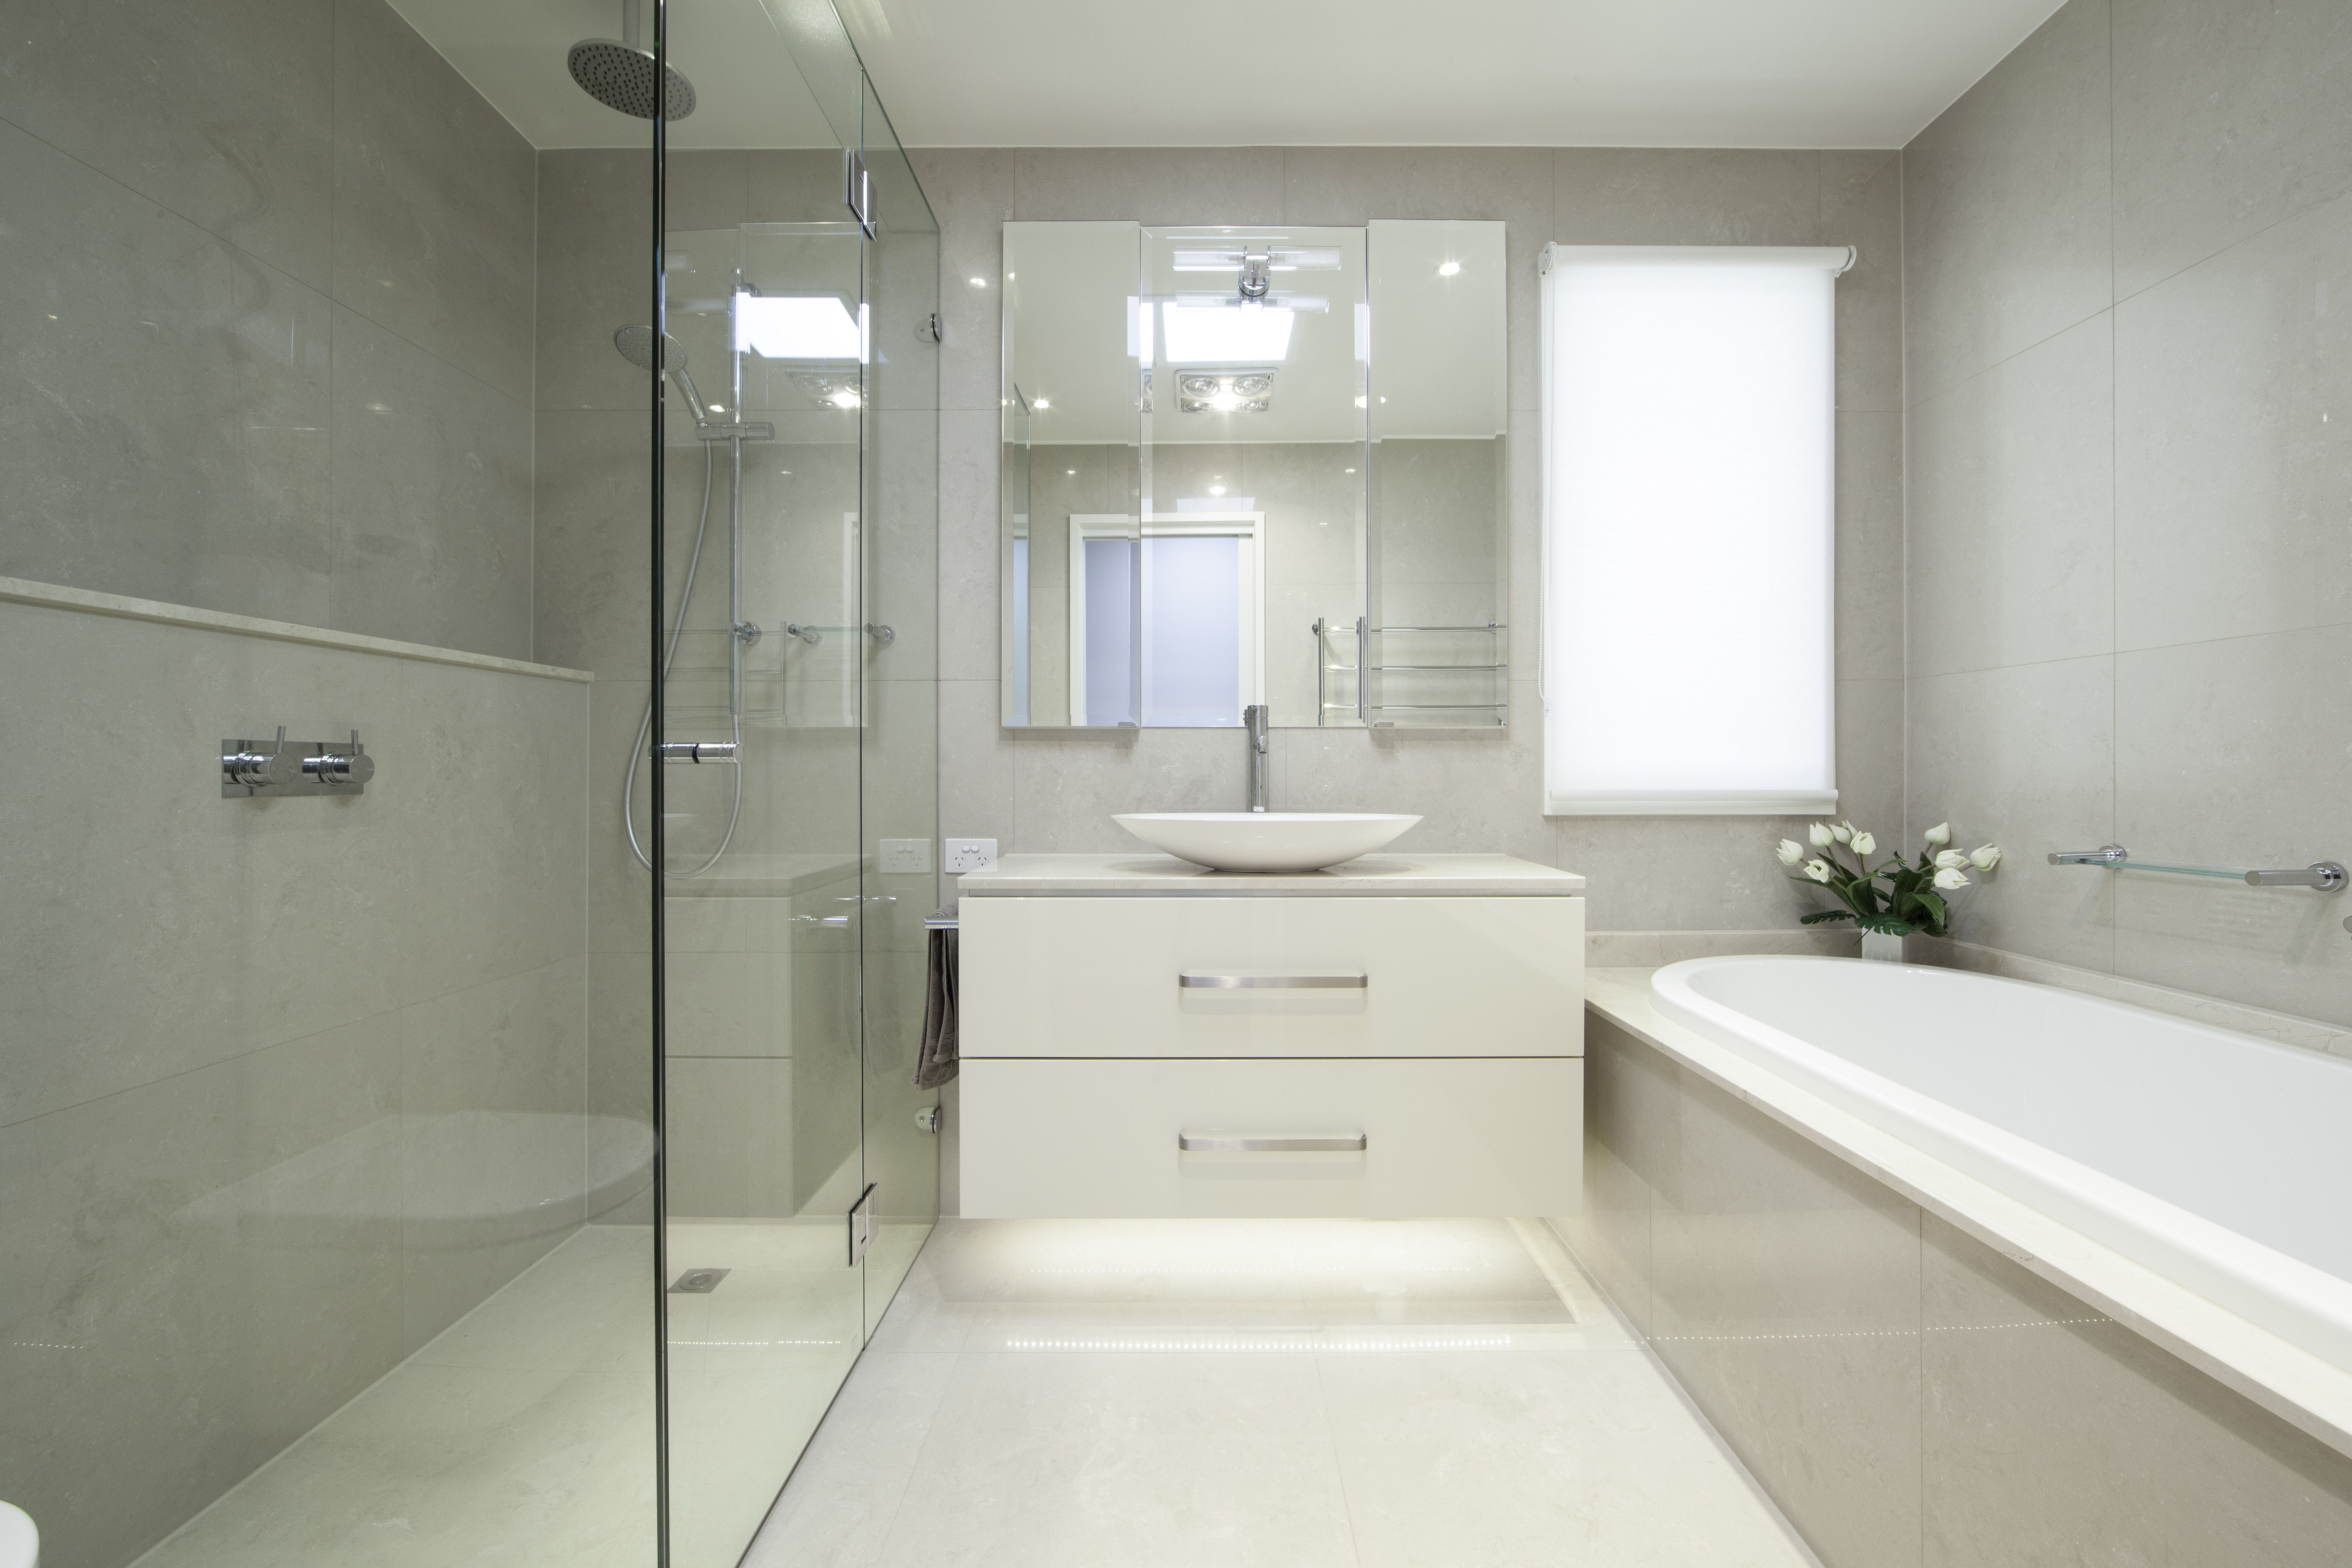 Pin by Alаyah Мayra on For Lory | Pinterest | Melbourne, Bathroom ...